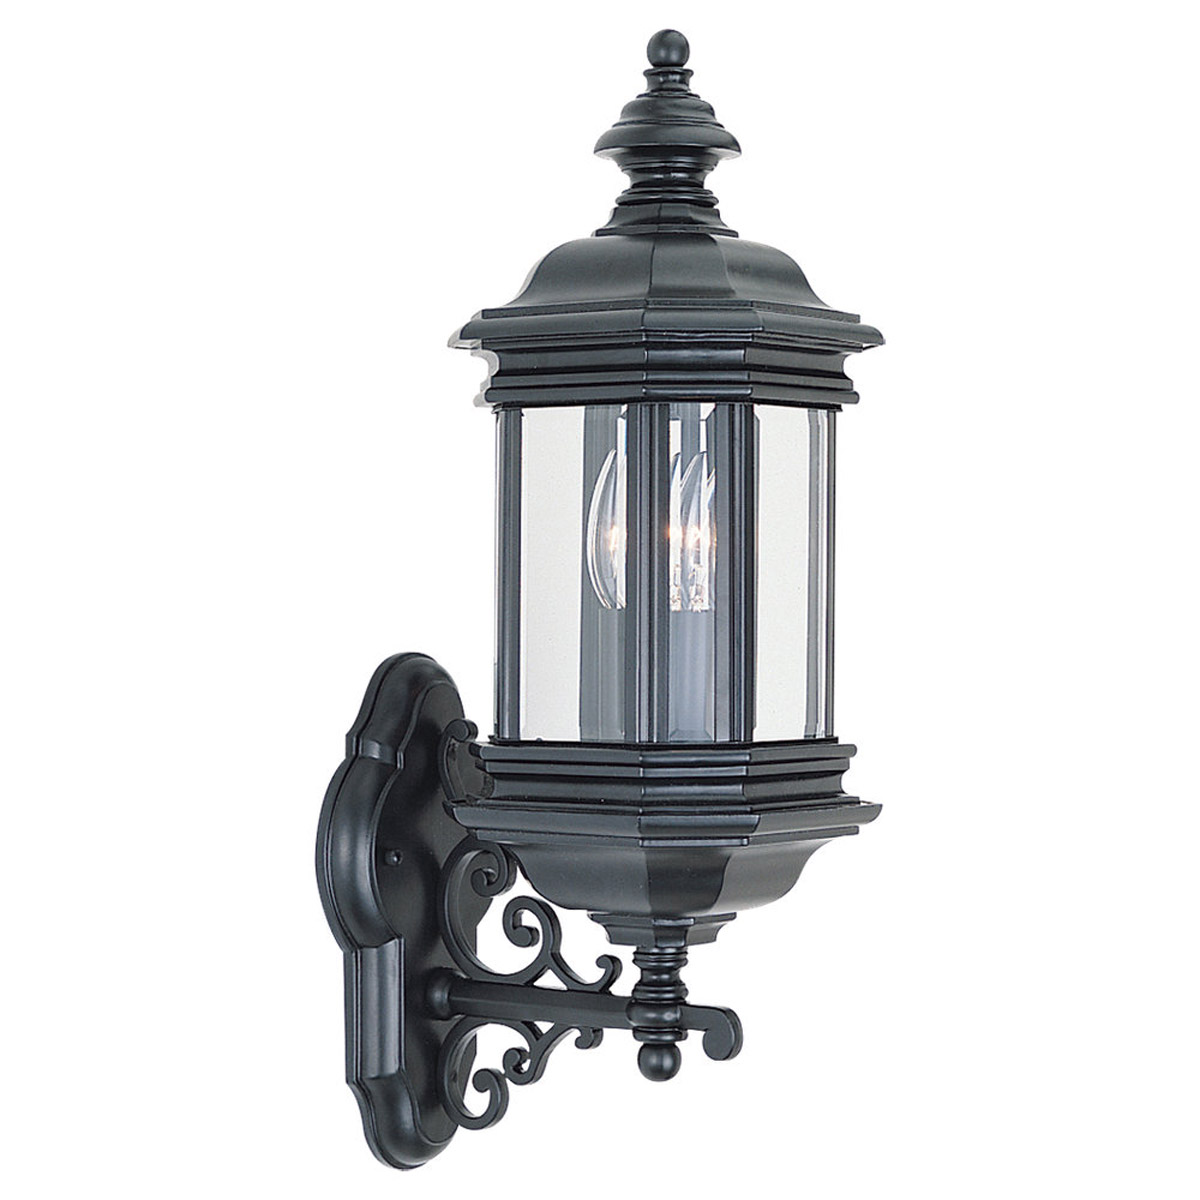 Sea Gull Lighting Hill Gate 2 Light Outdoor Wall Lantern in Black 8838-12